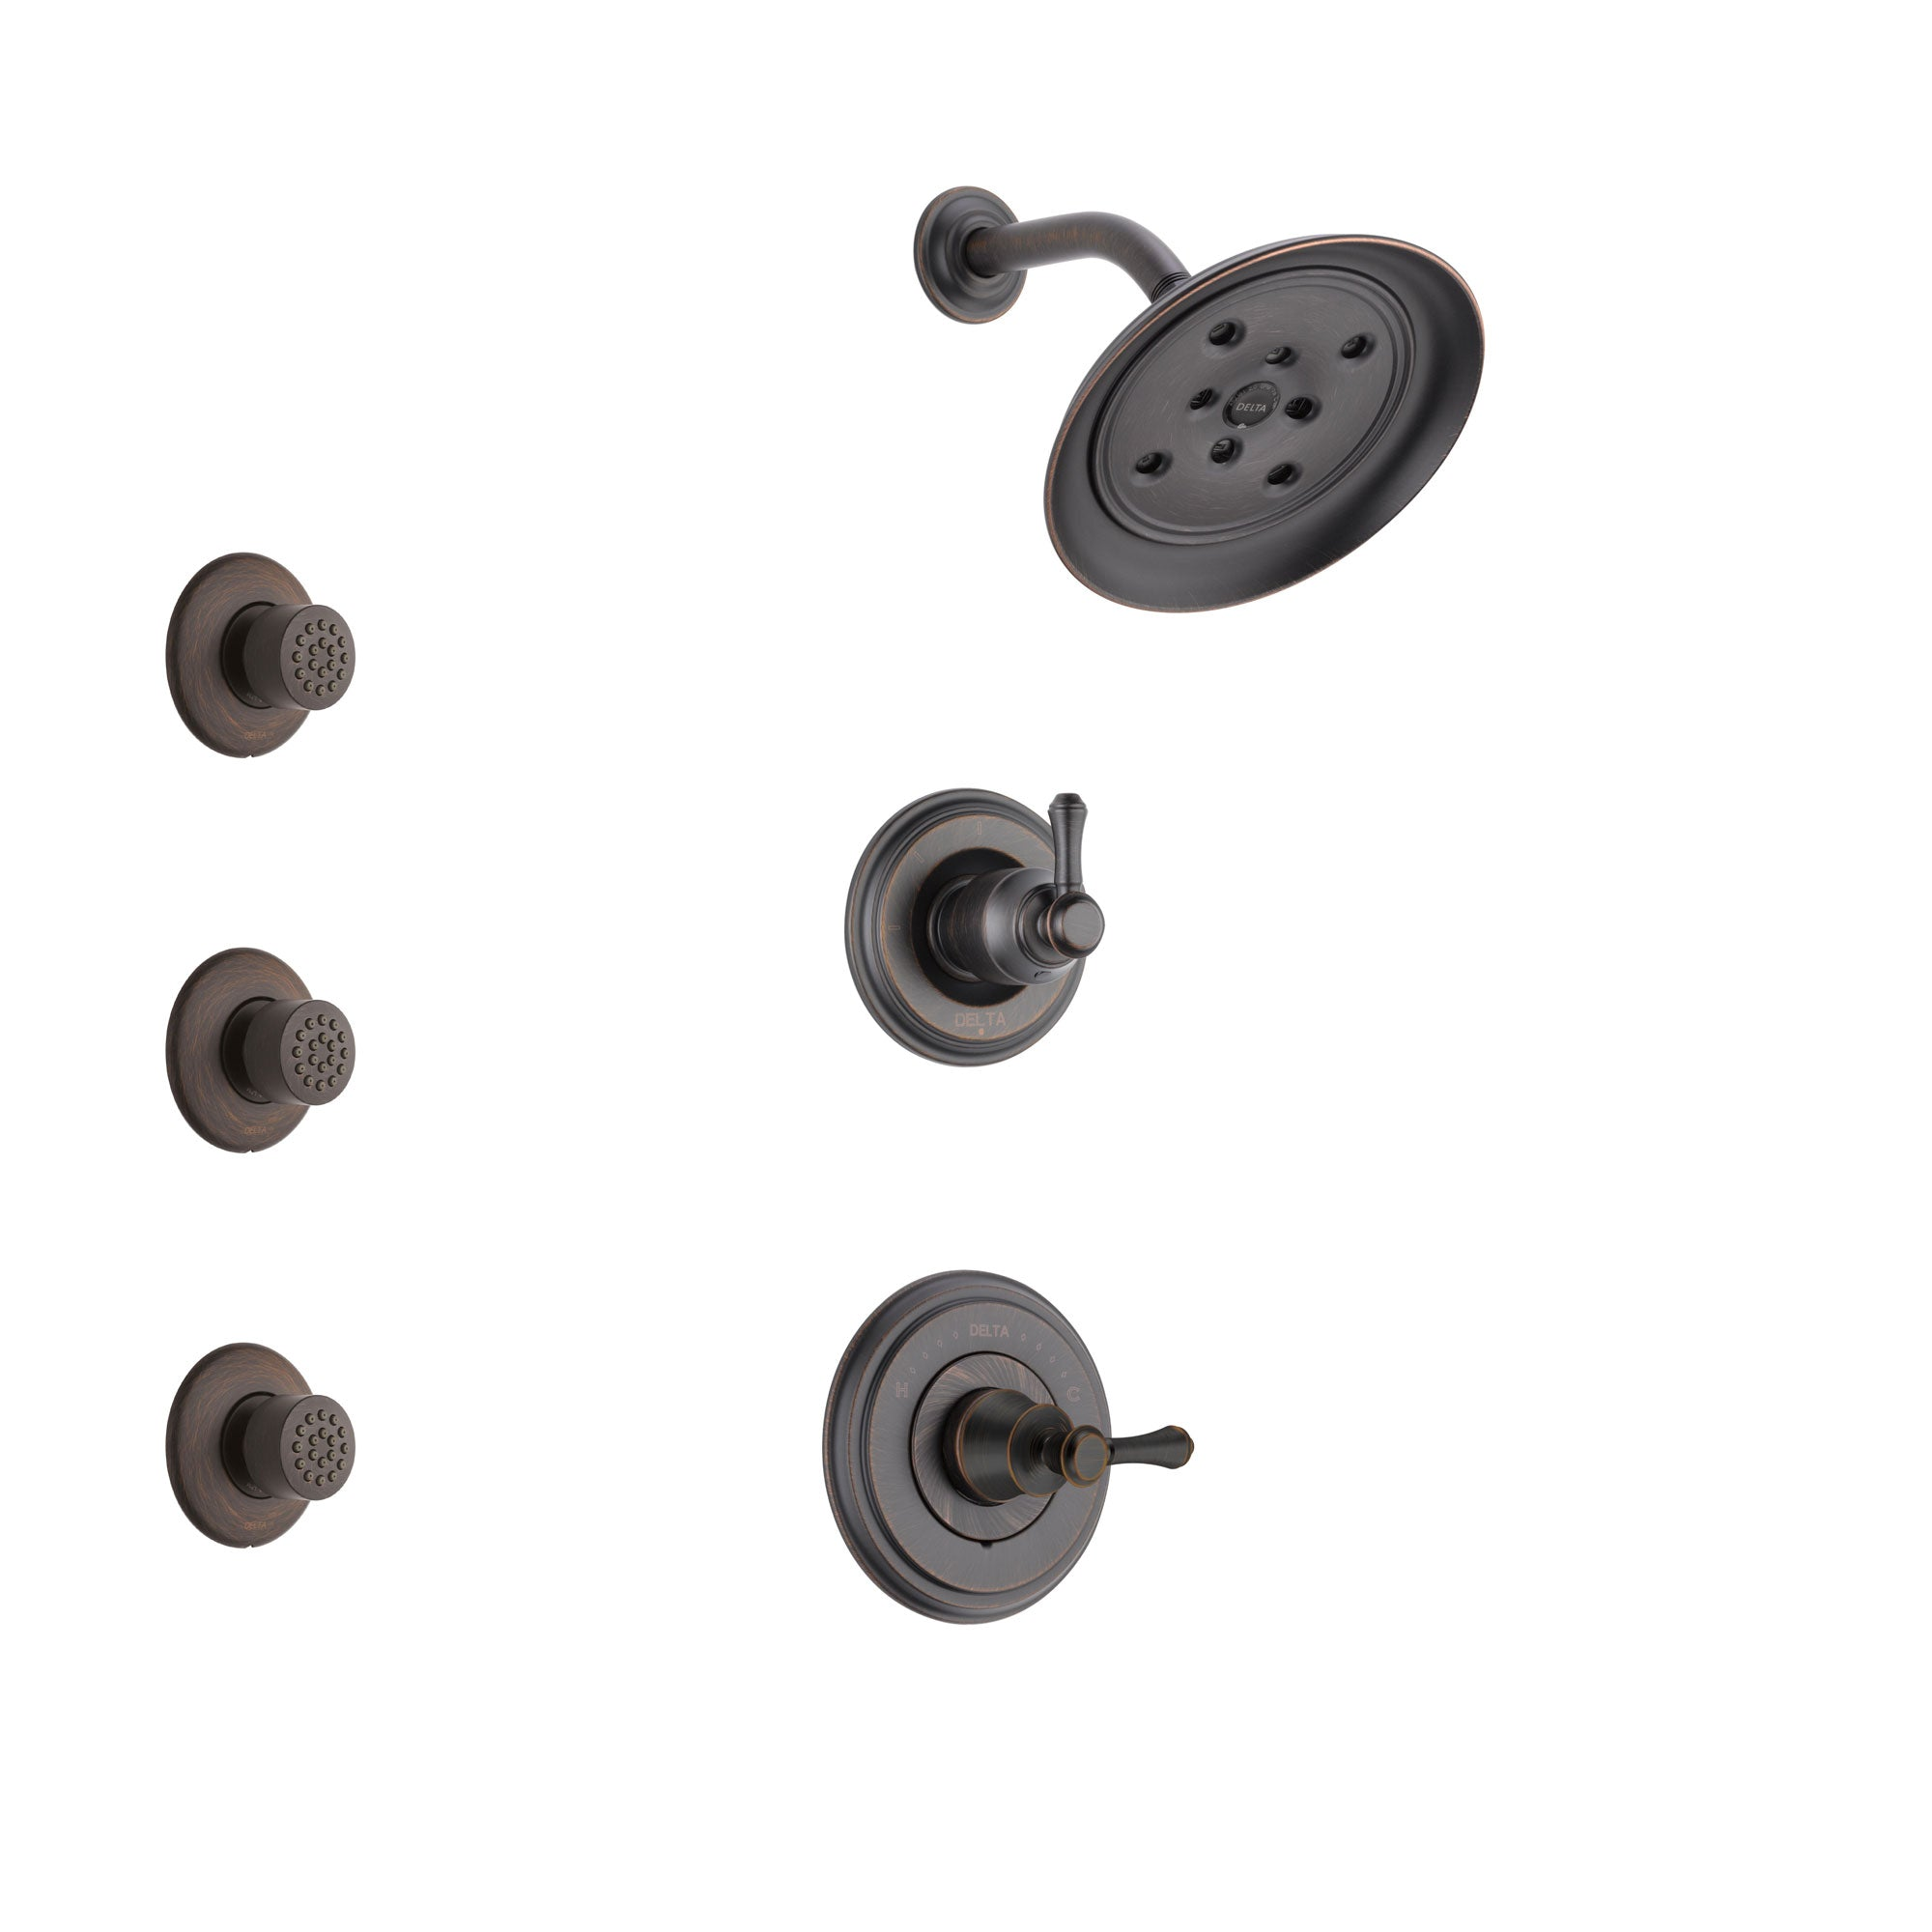 Delta Cassidy Venetian Bronze Finish Shower System with Control Handle, 3-Setting Diverter, Showerhead, and 3 Body Sprays SS142973RB1